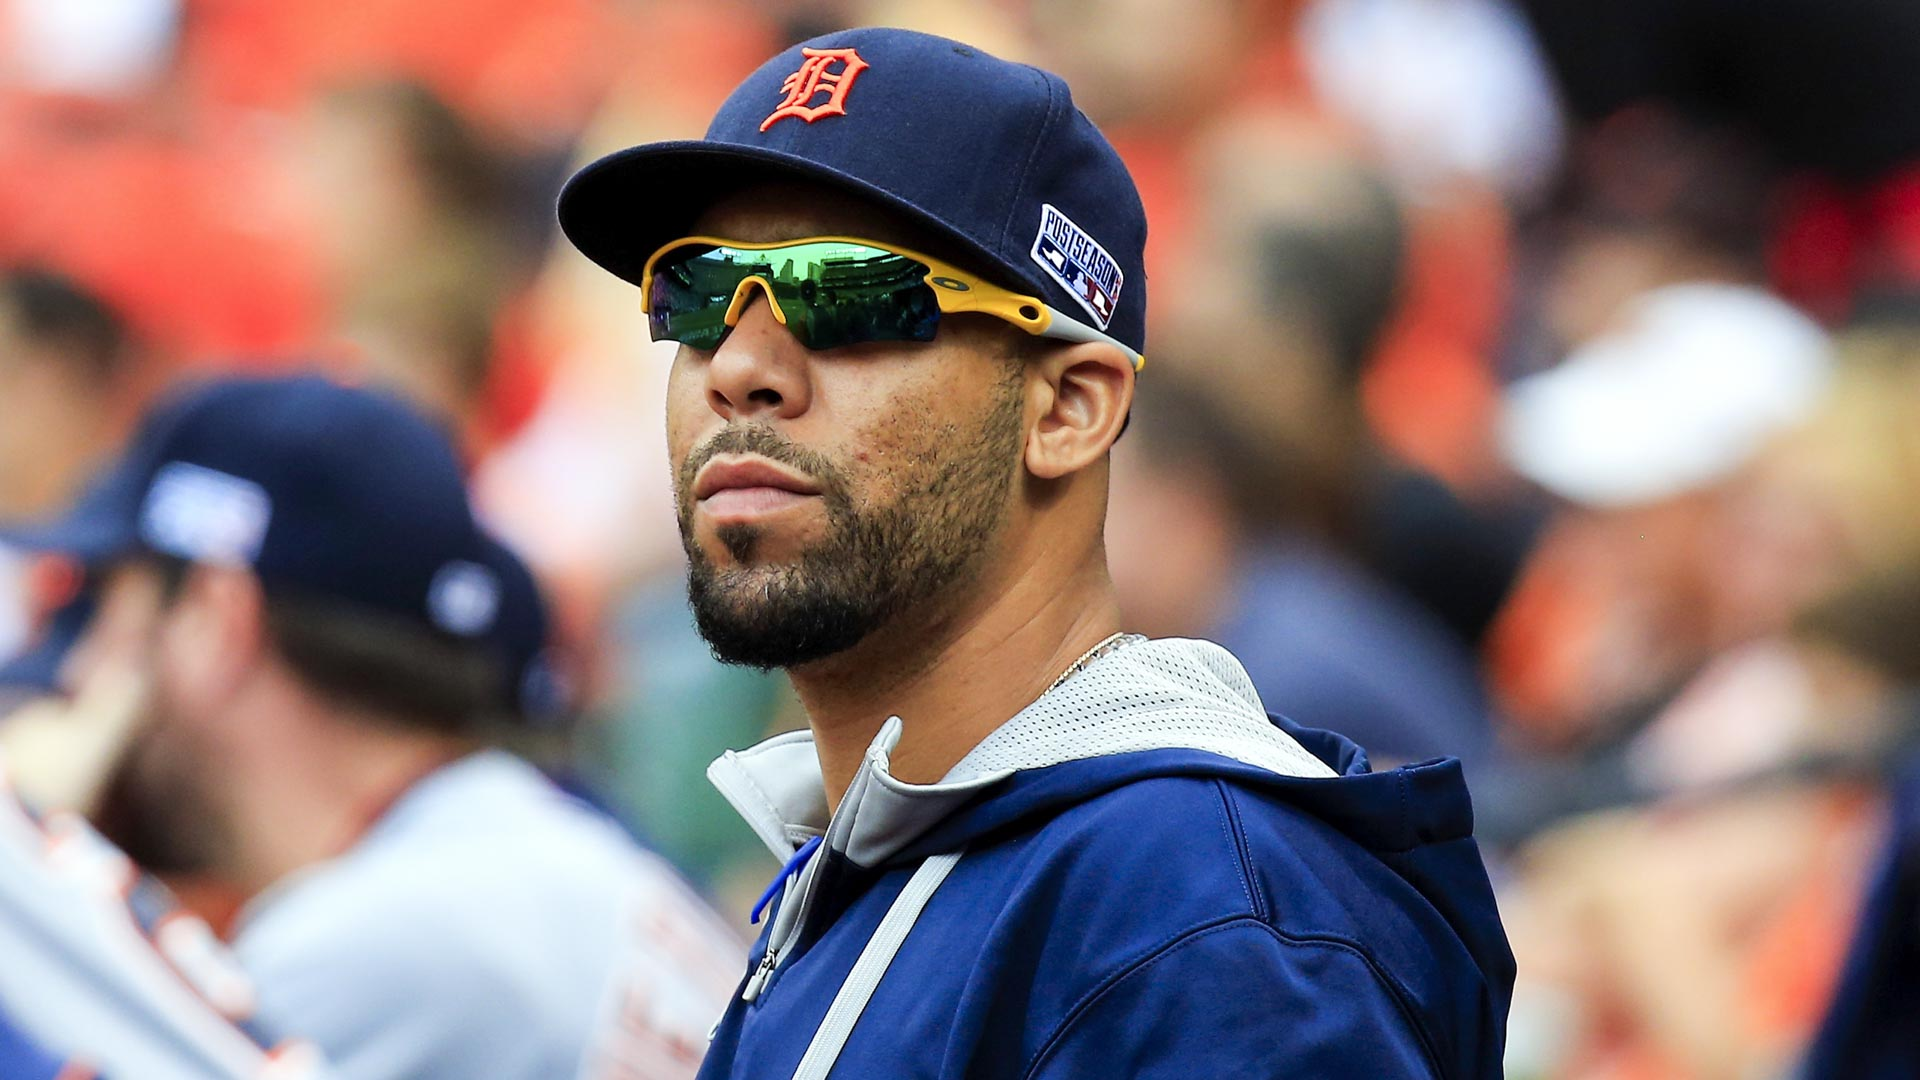 David Price trade gives Blue Jays hope of ending ugly playoff drought